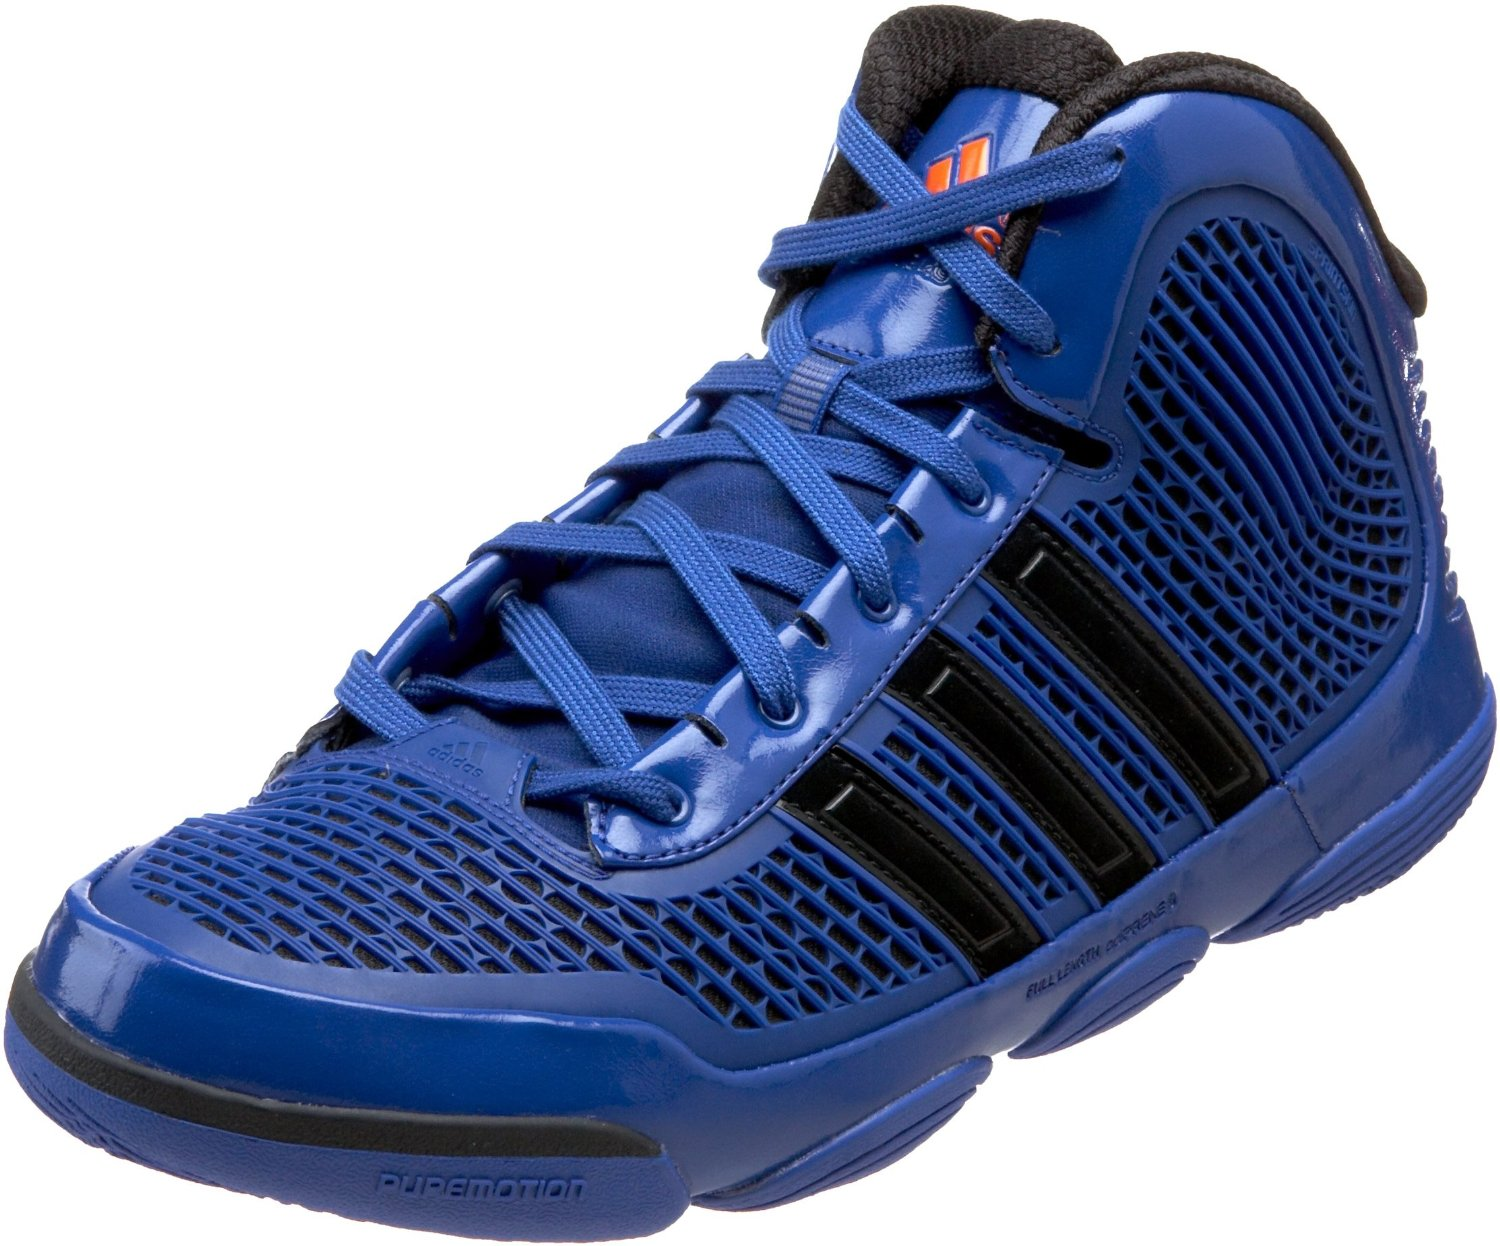 Adidas basketball shoes 2012